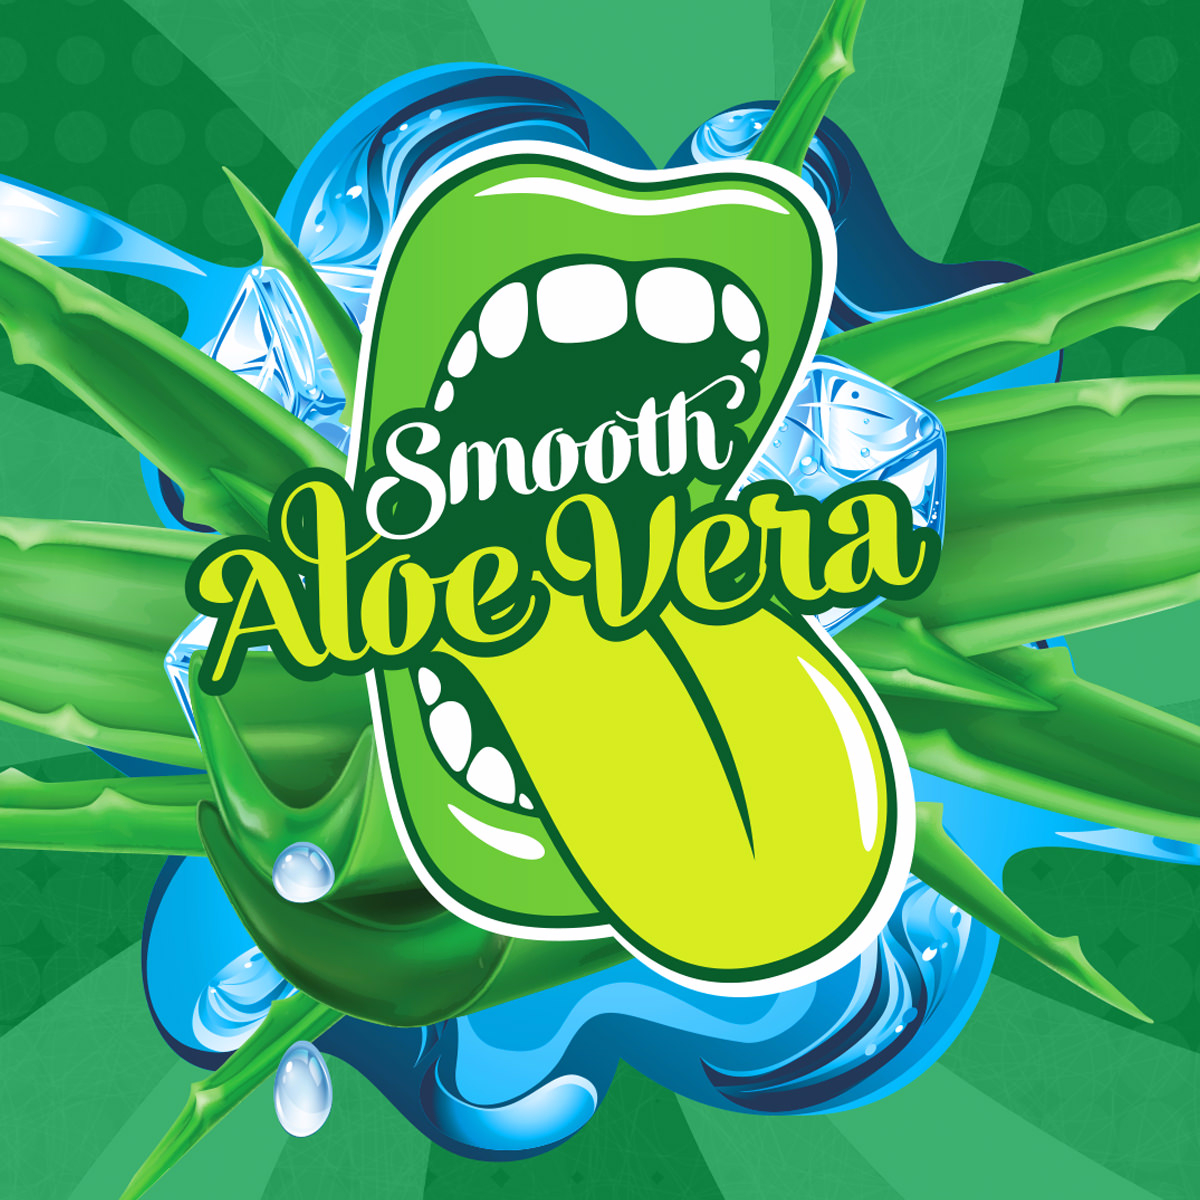 Big Mouth Smooth Aloe Vera 10ml